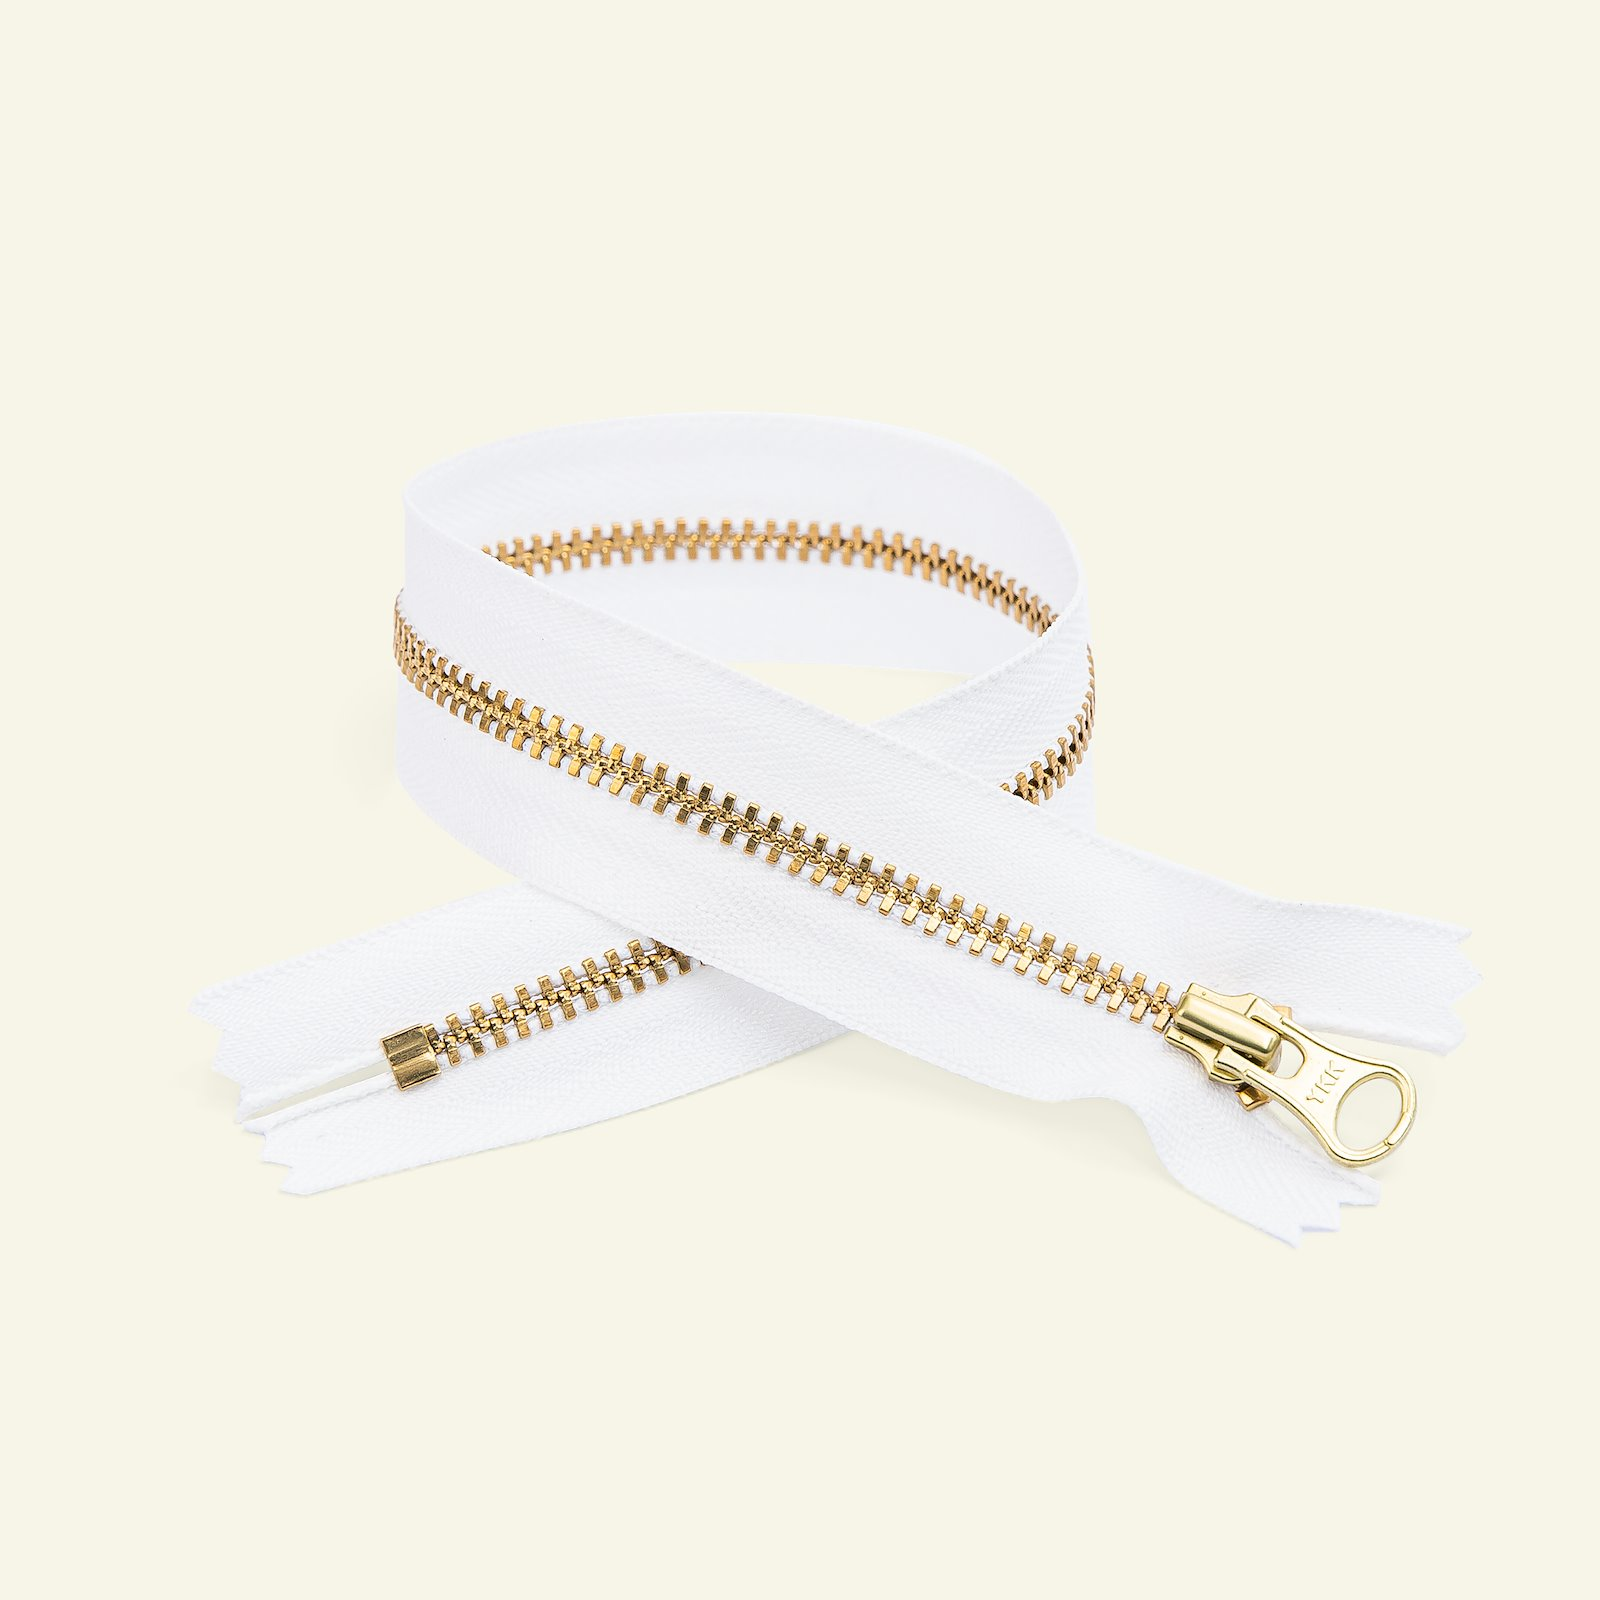 YKK zip 4mm closed end 25cm white/gold x59601_pack